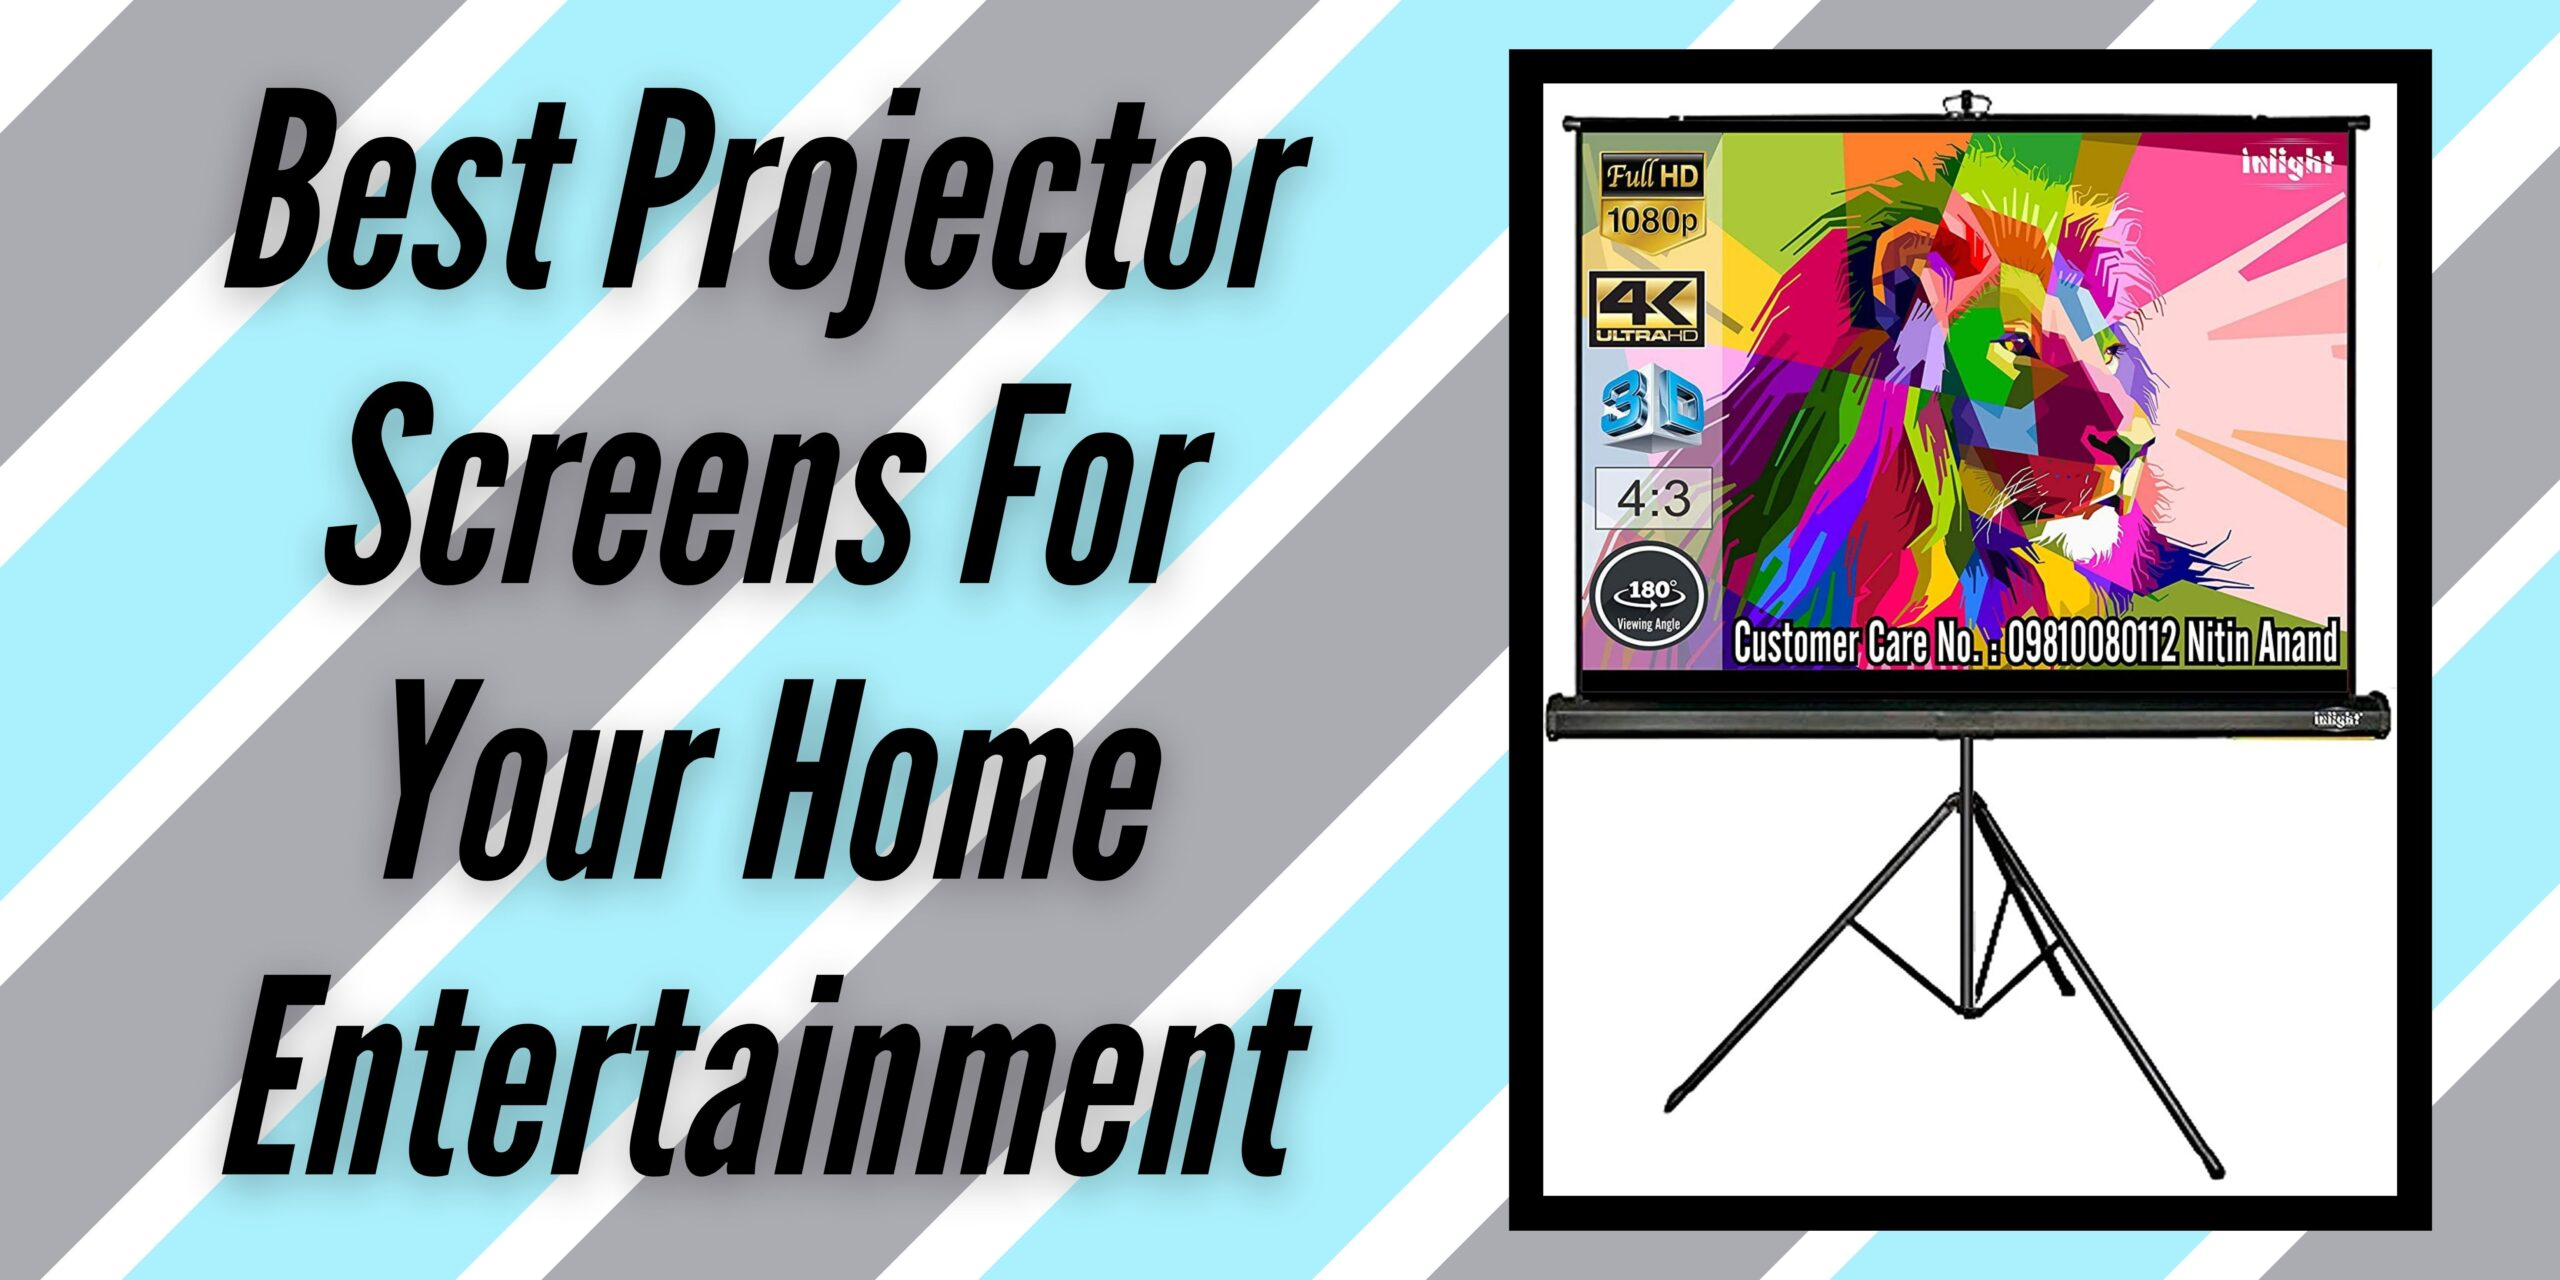 5 Best Projector Screens For Your Home Entertainment